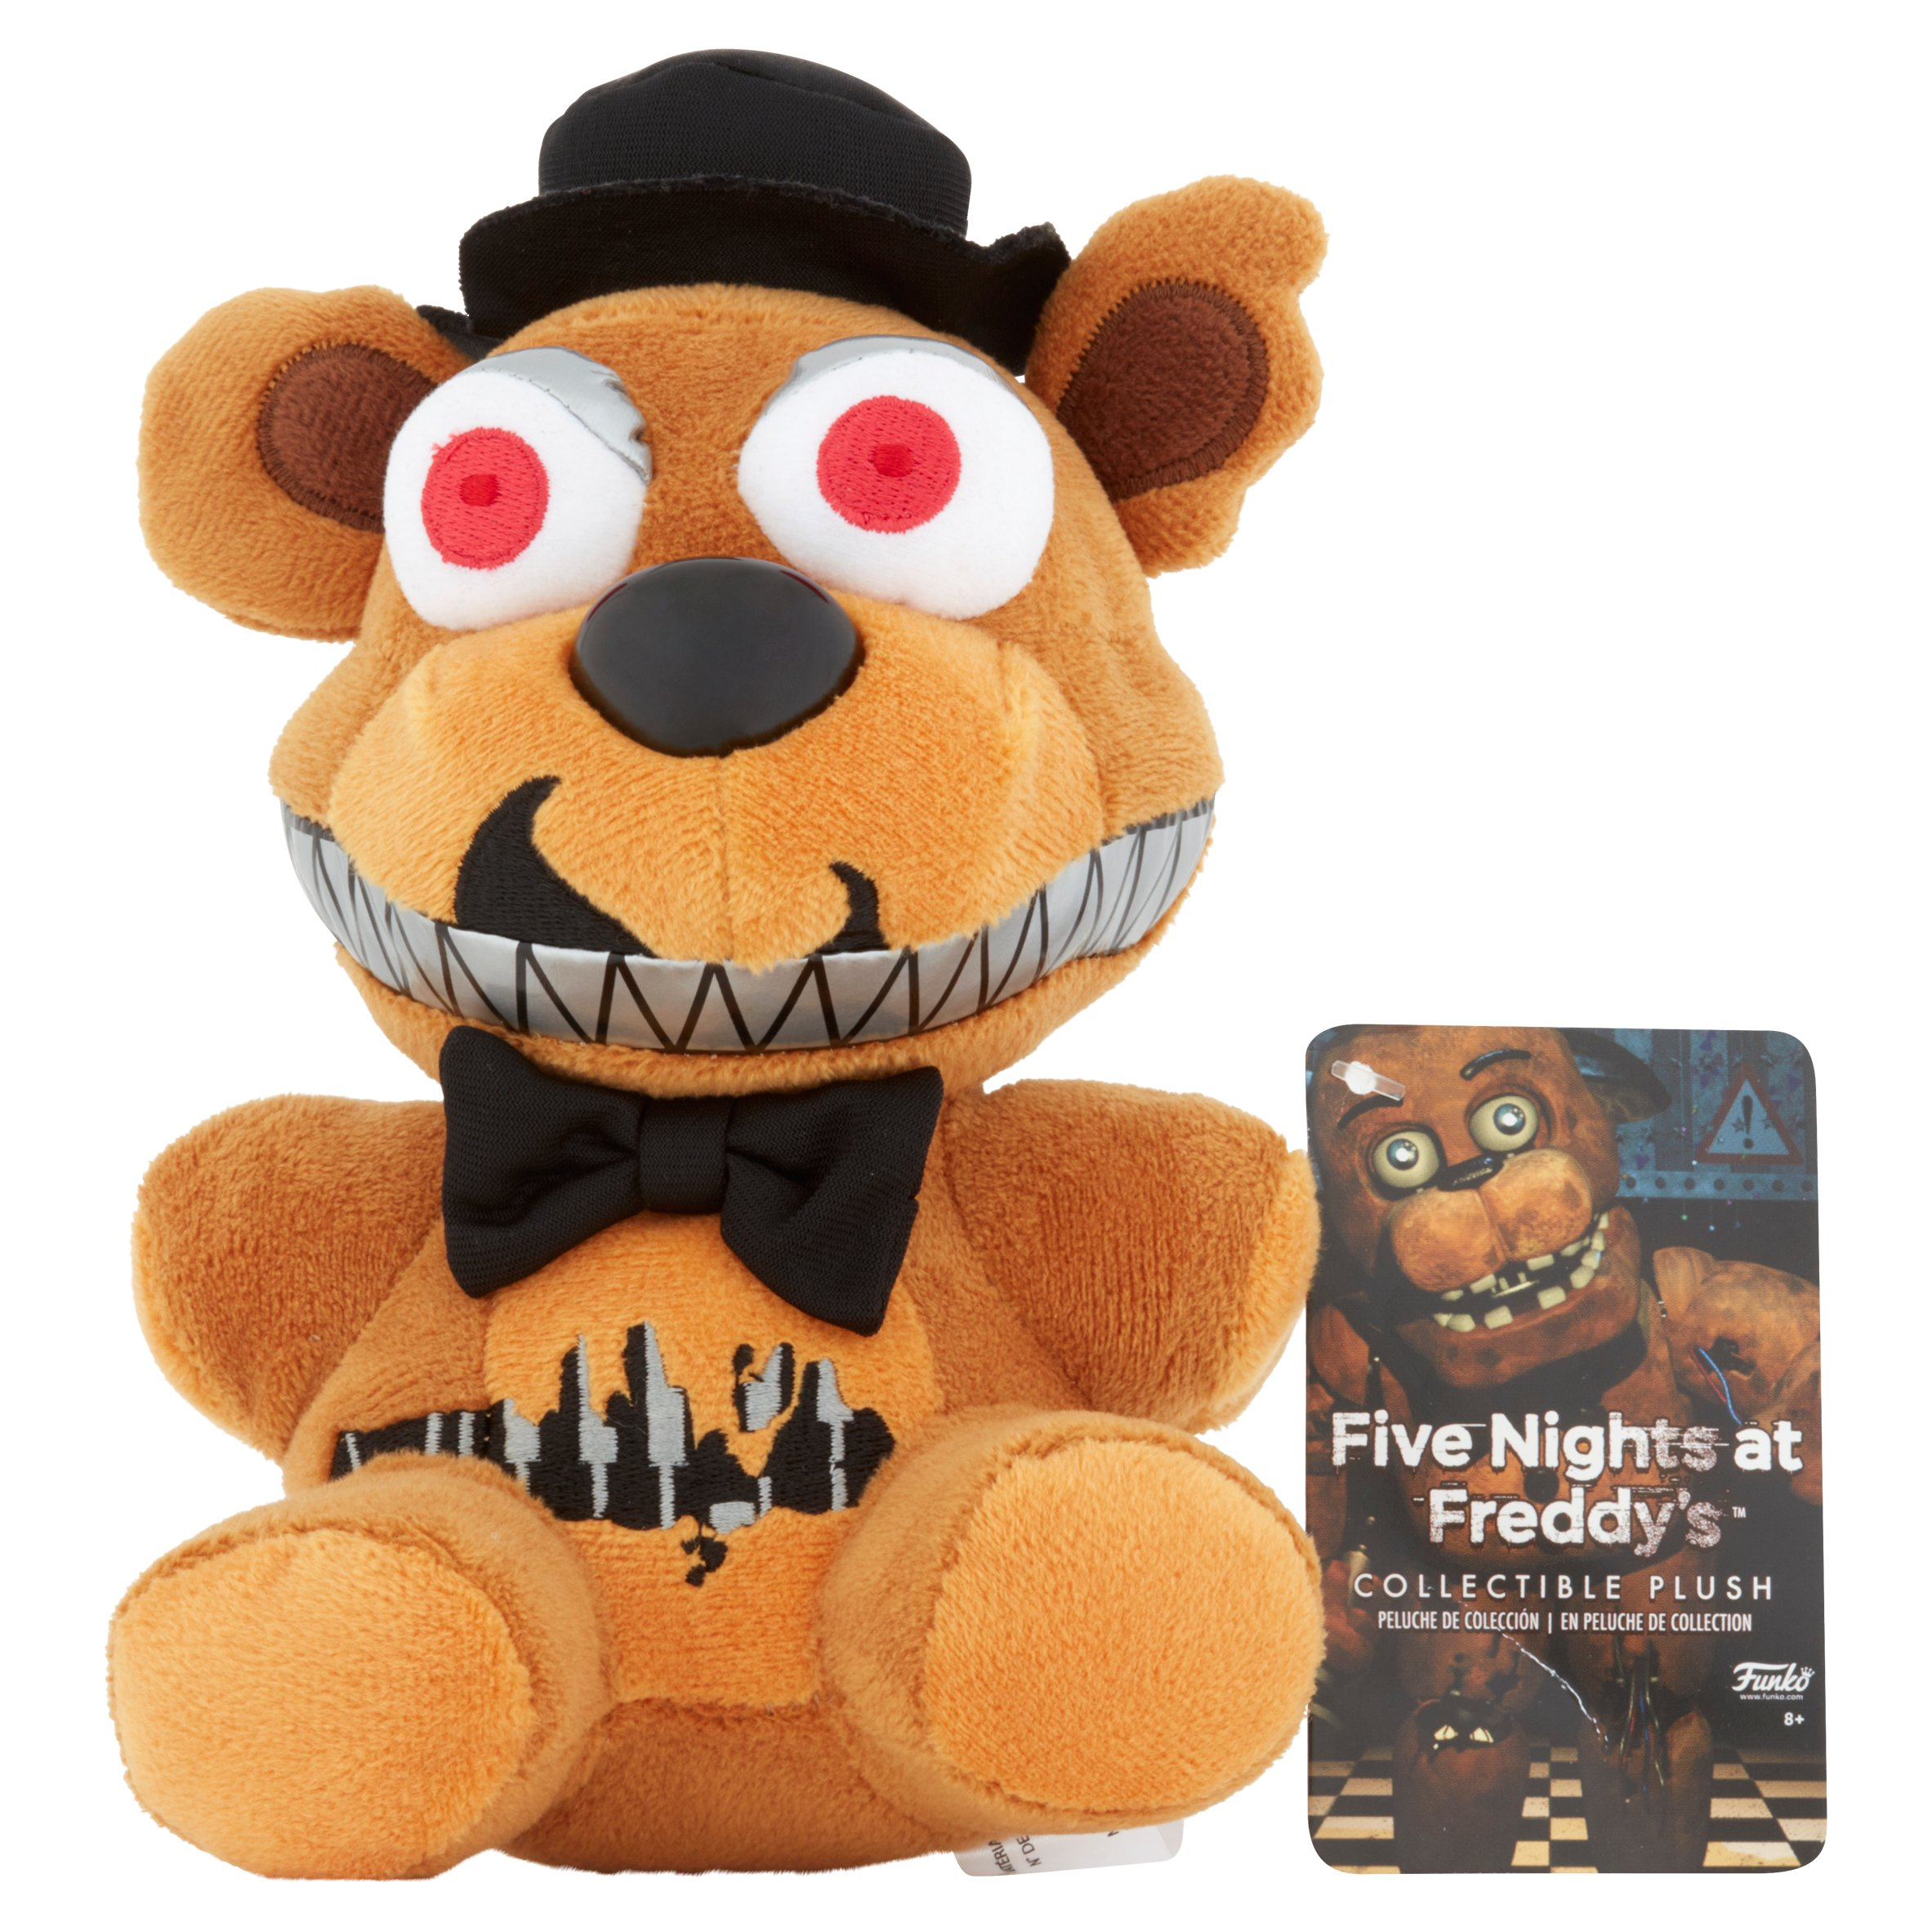 Funko Five Nights at Freddy's Collectible Plush 8+